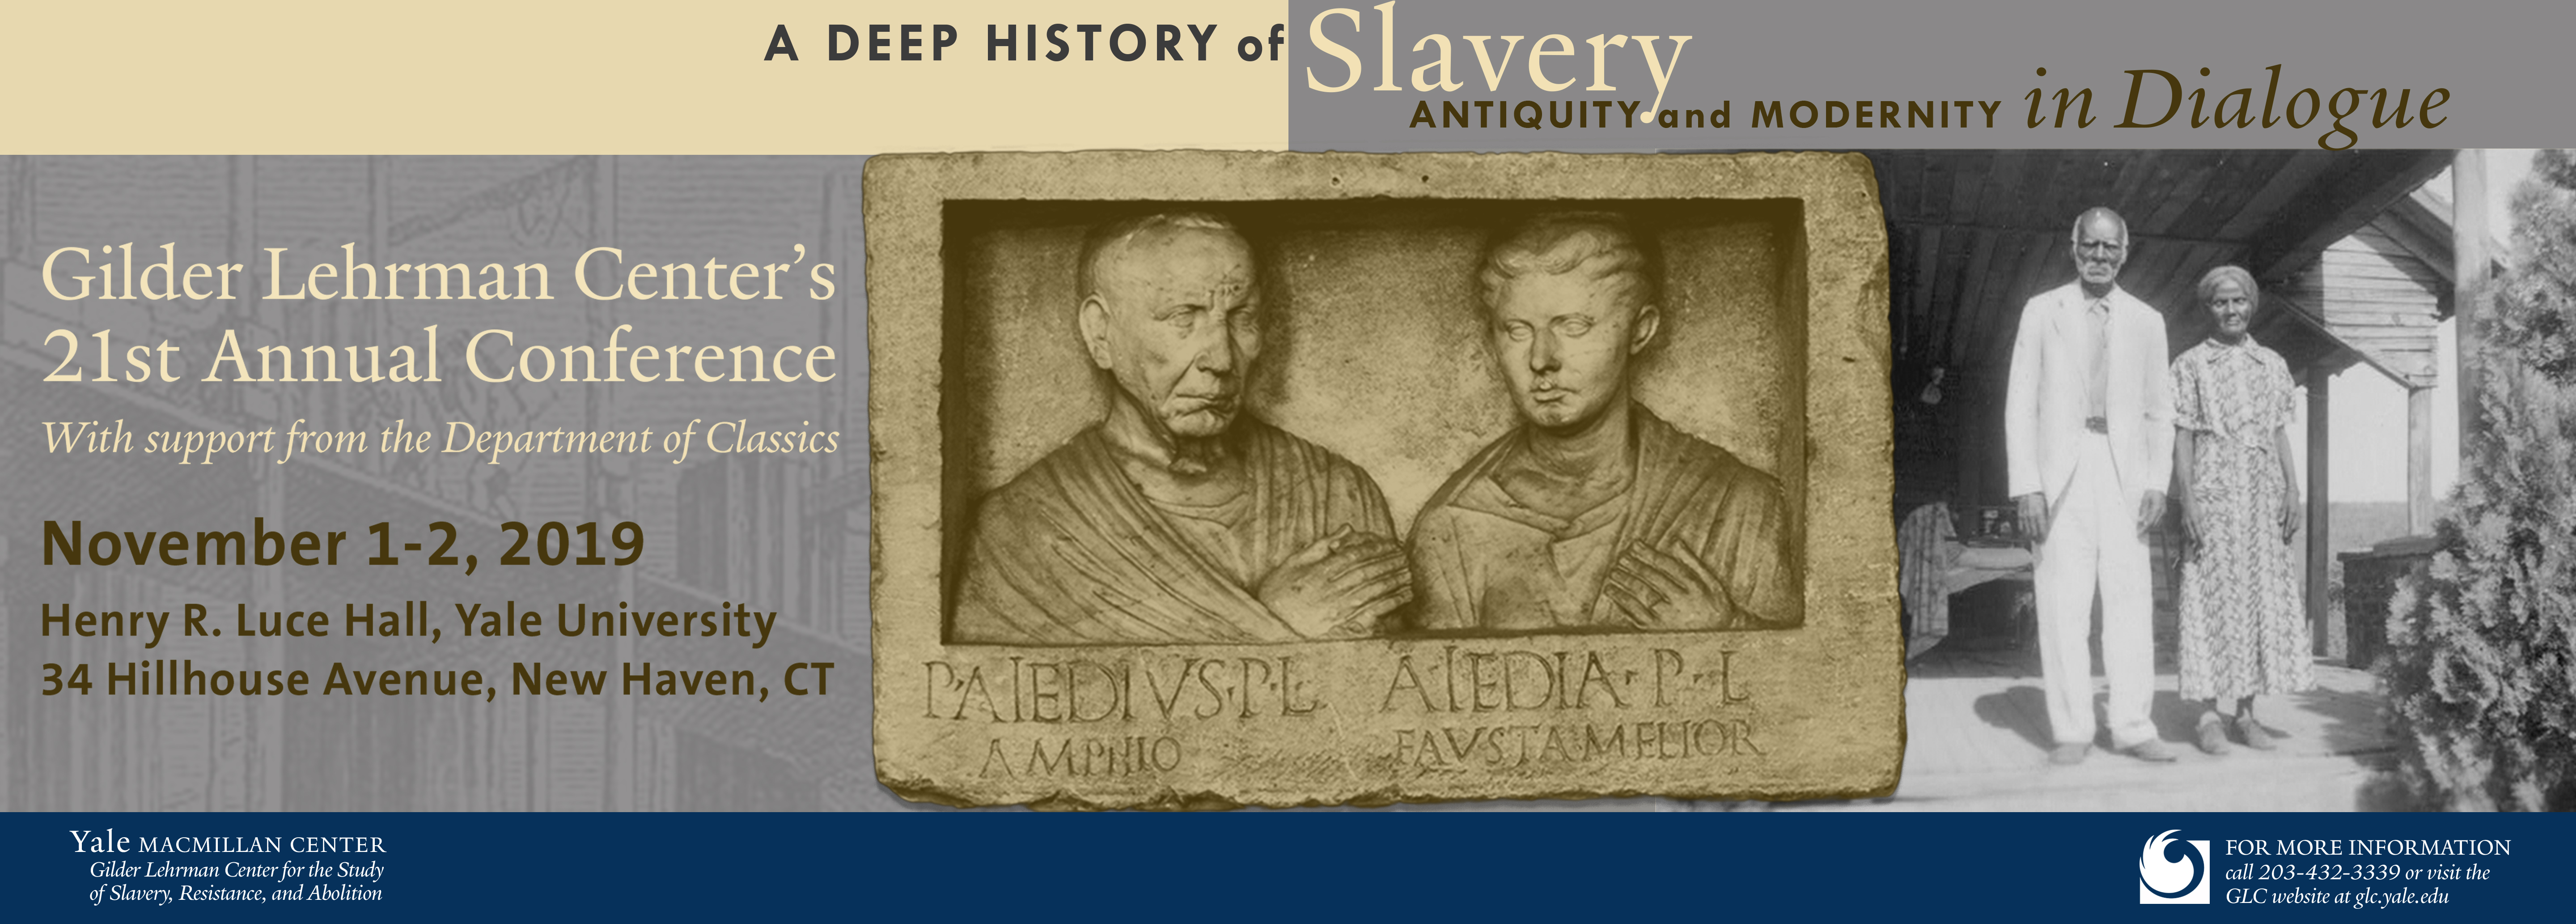 A Deep History of Slavery: Antiquity and Modernity in Dialog